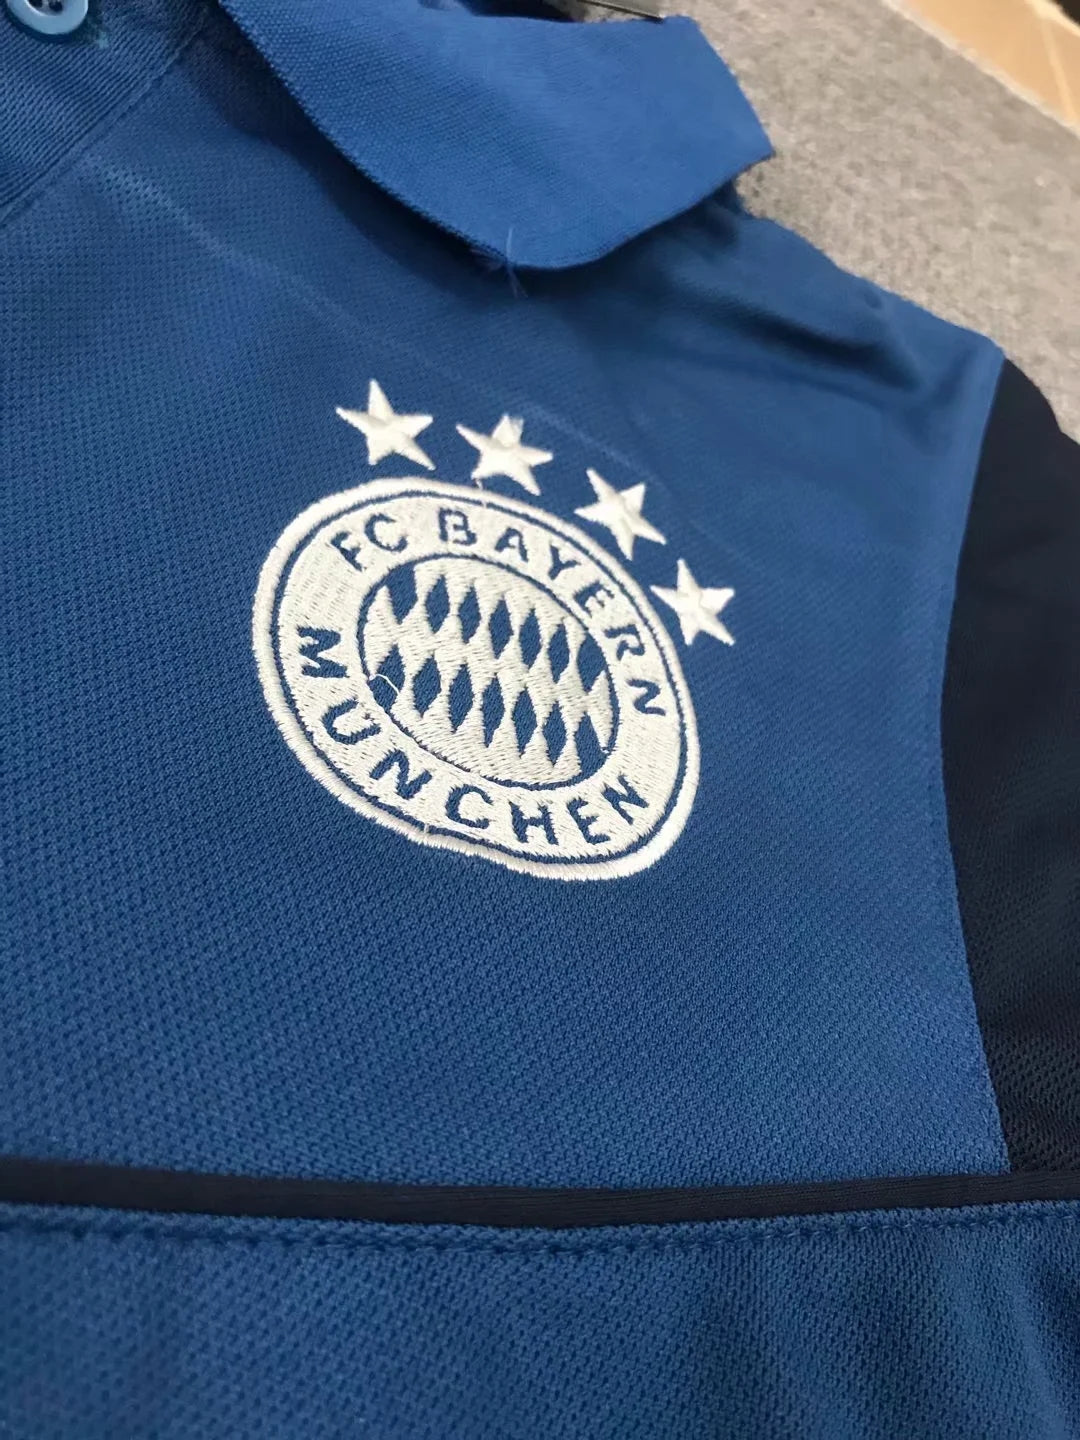 Bayern Munich 20/21 Polo Tee